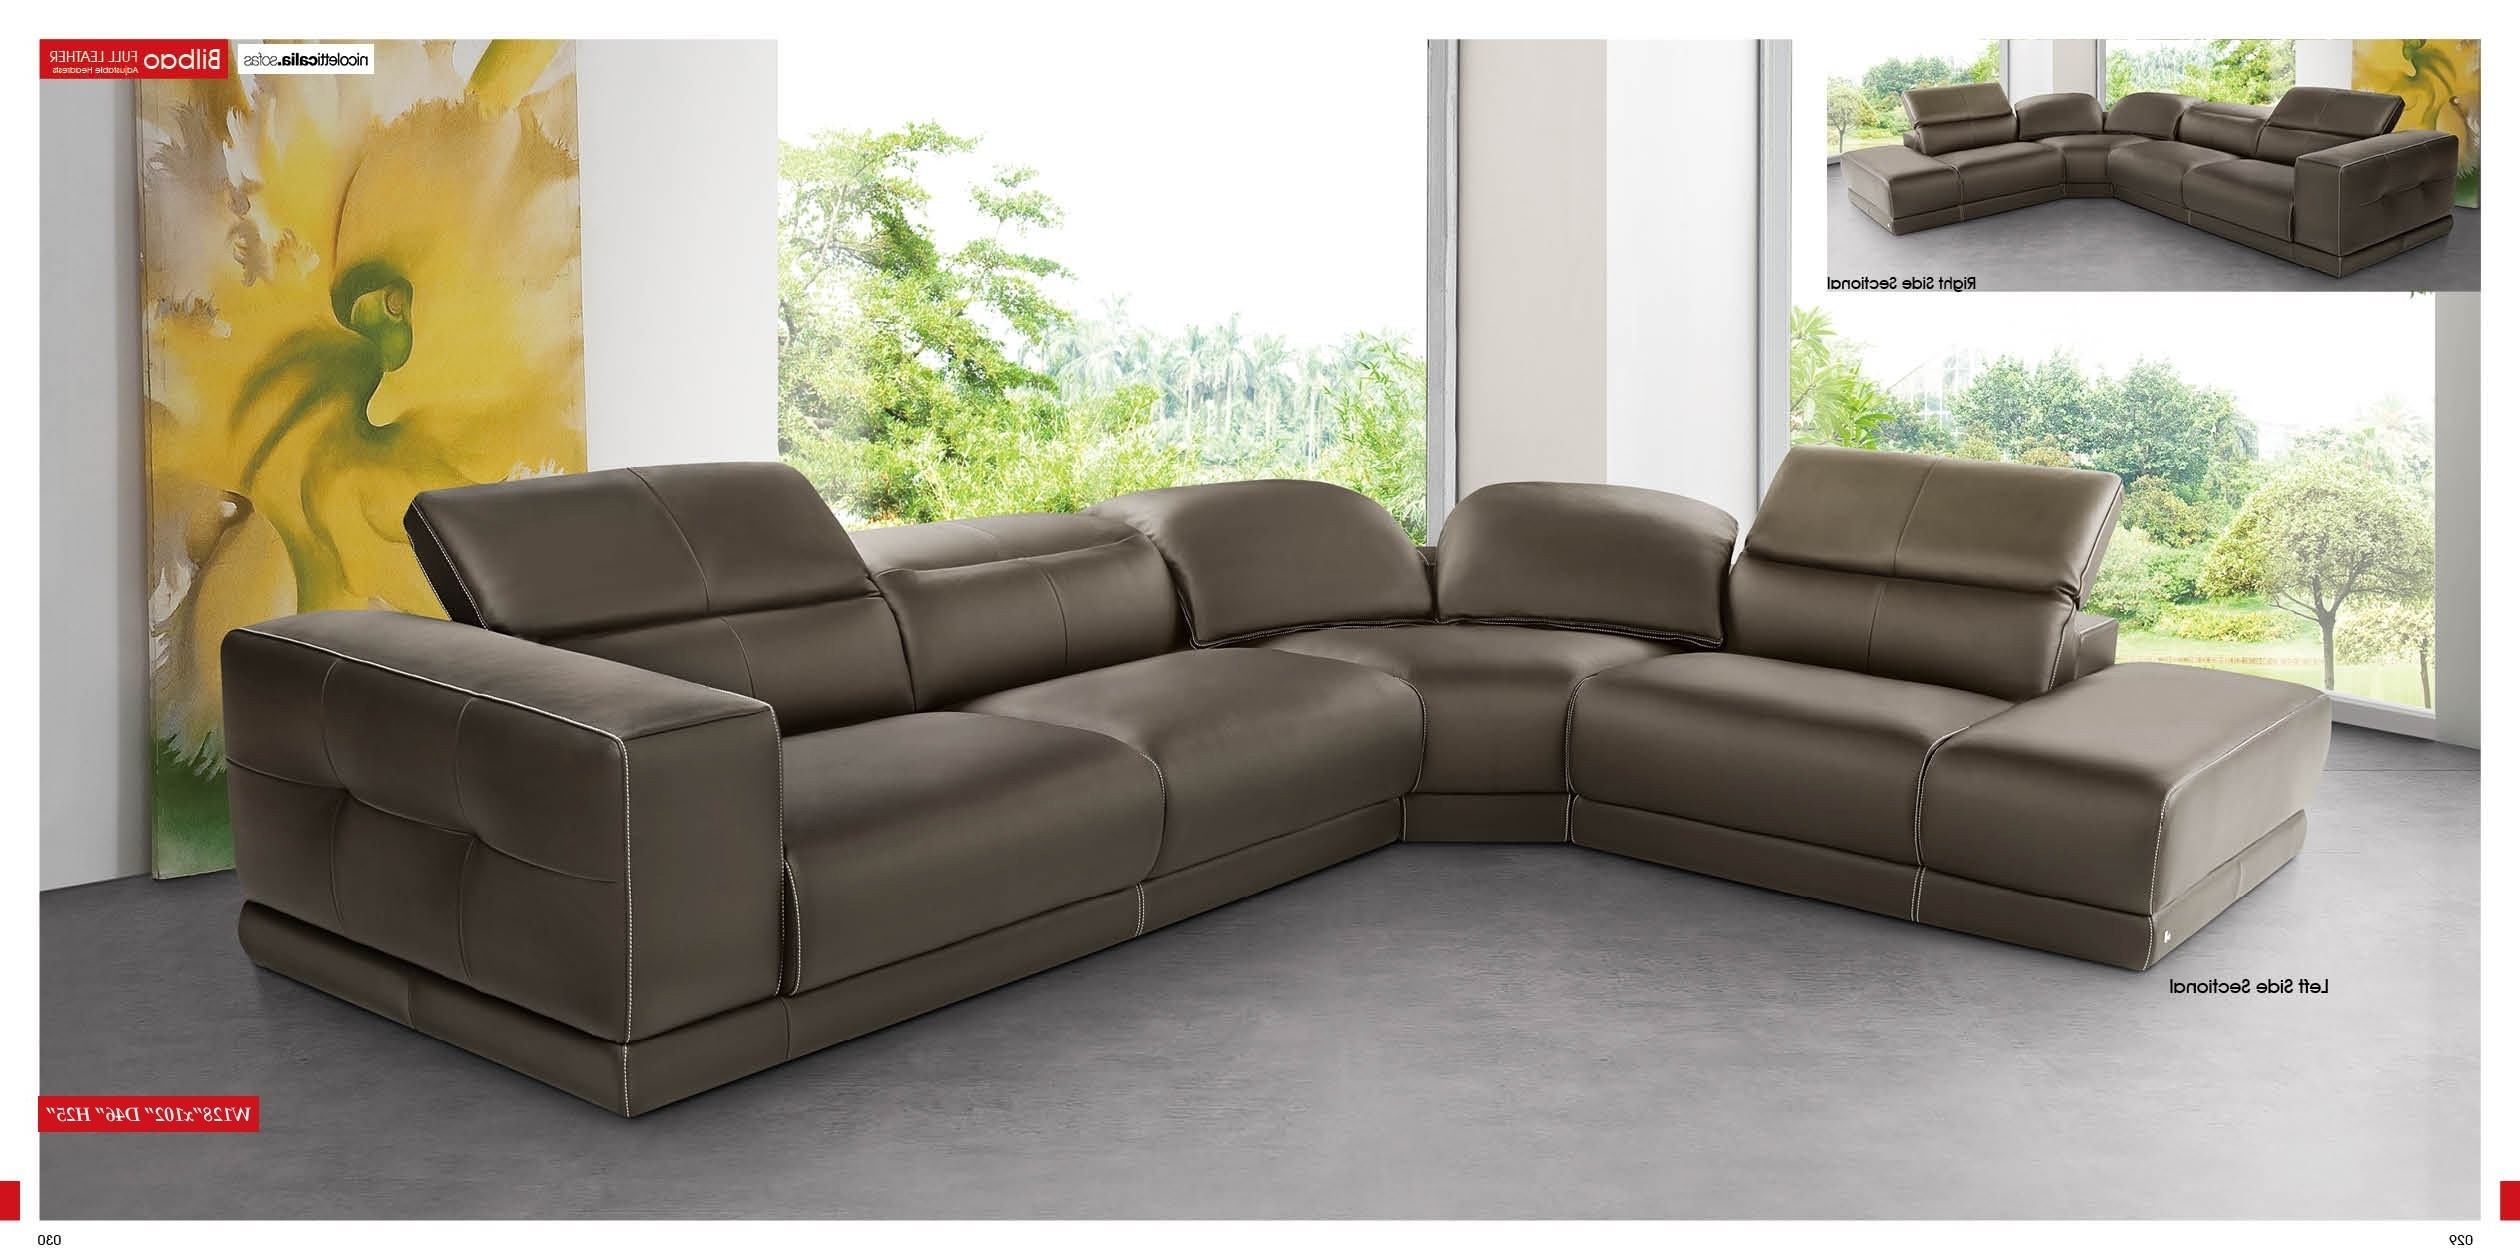 Most Popular Furniture : Sectional Sofa 80 Inches 170 Cm Corner Sofa Recliner Pertaining To Kijiji Calgary Sectional Sofas (View 11 of 15)